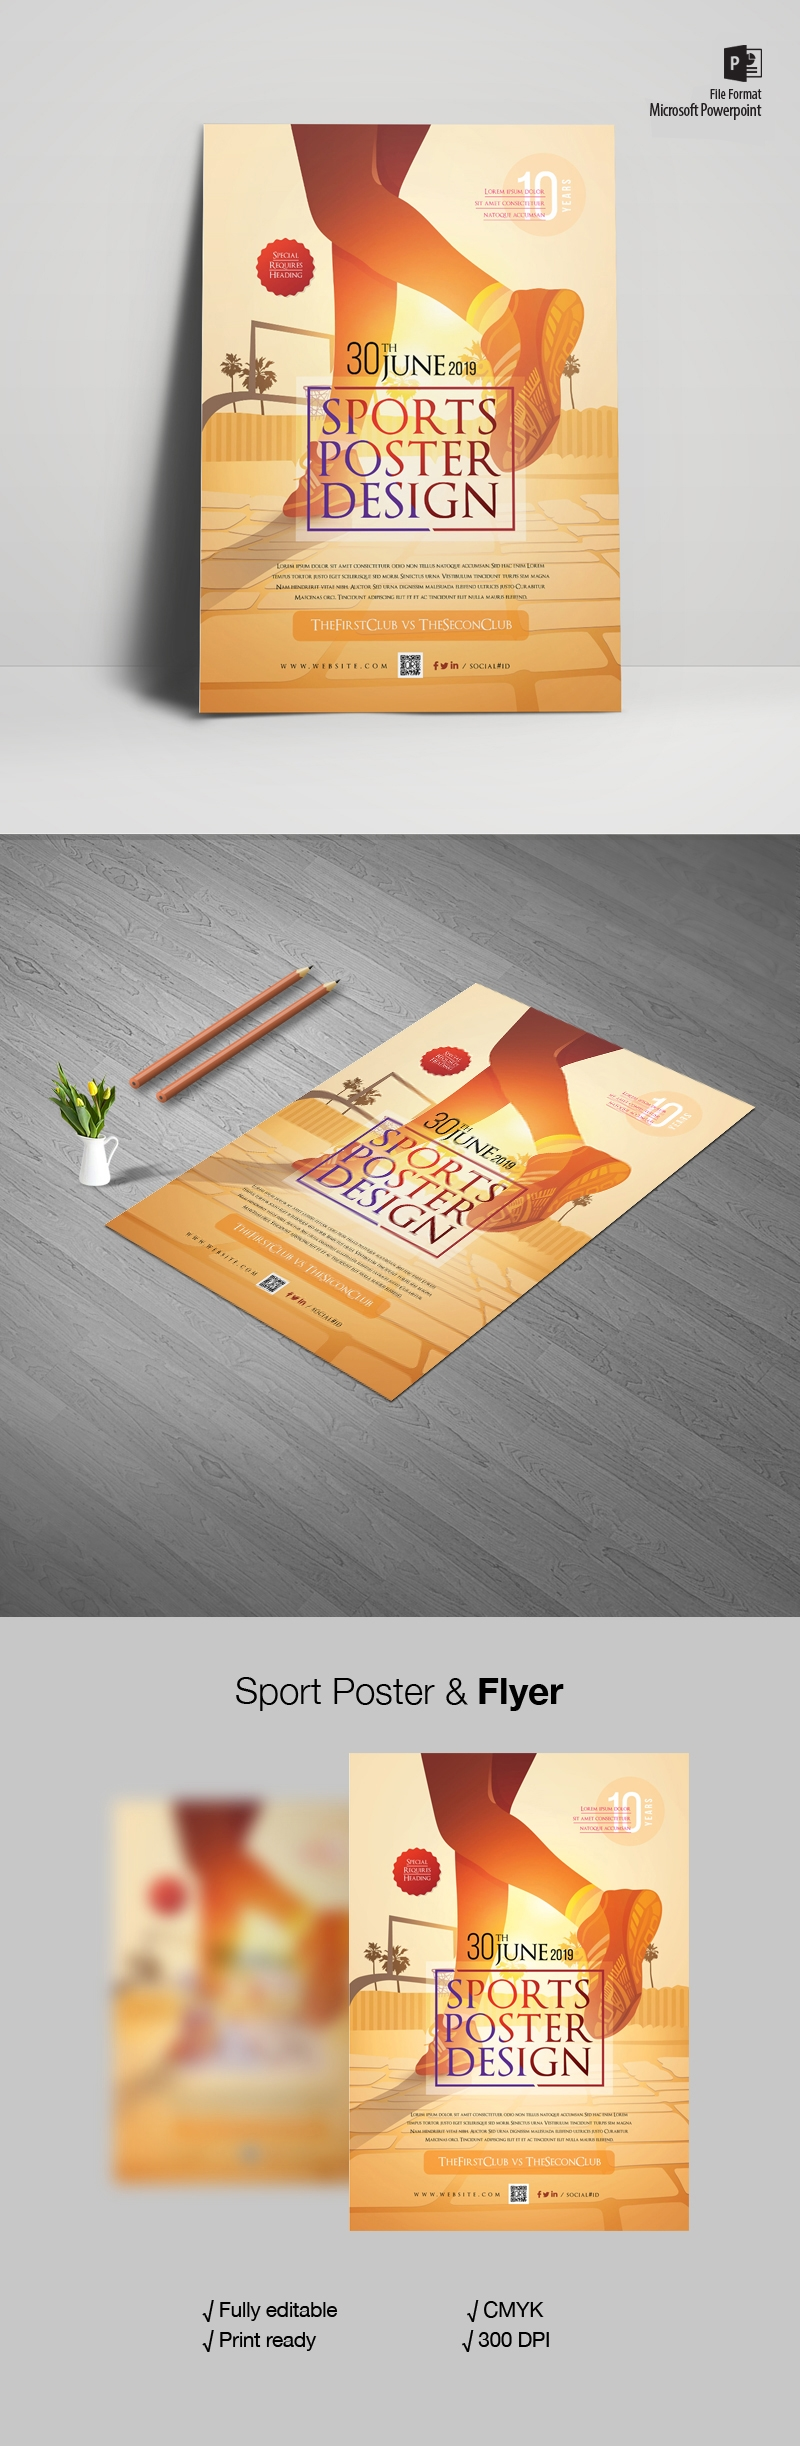 Sports Poster And Flyer With Legs Illustration